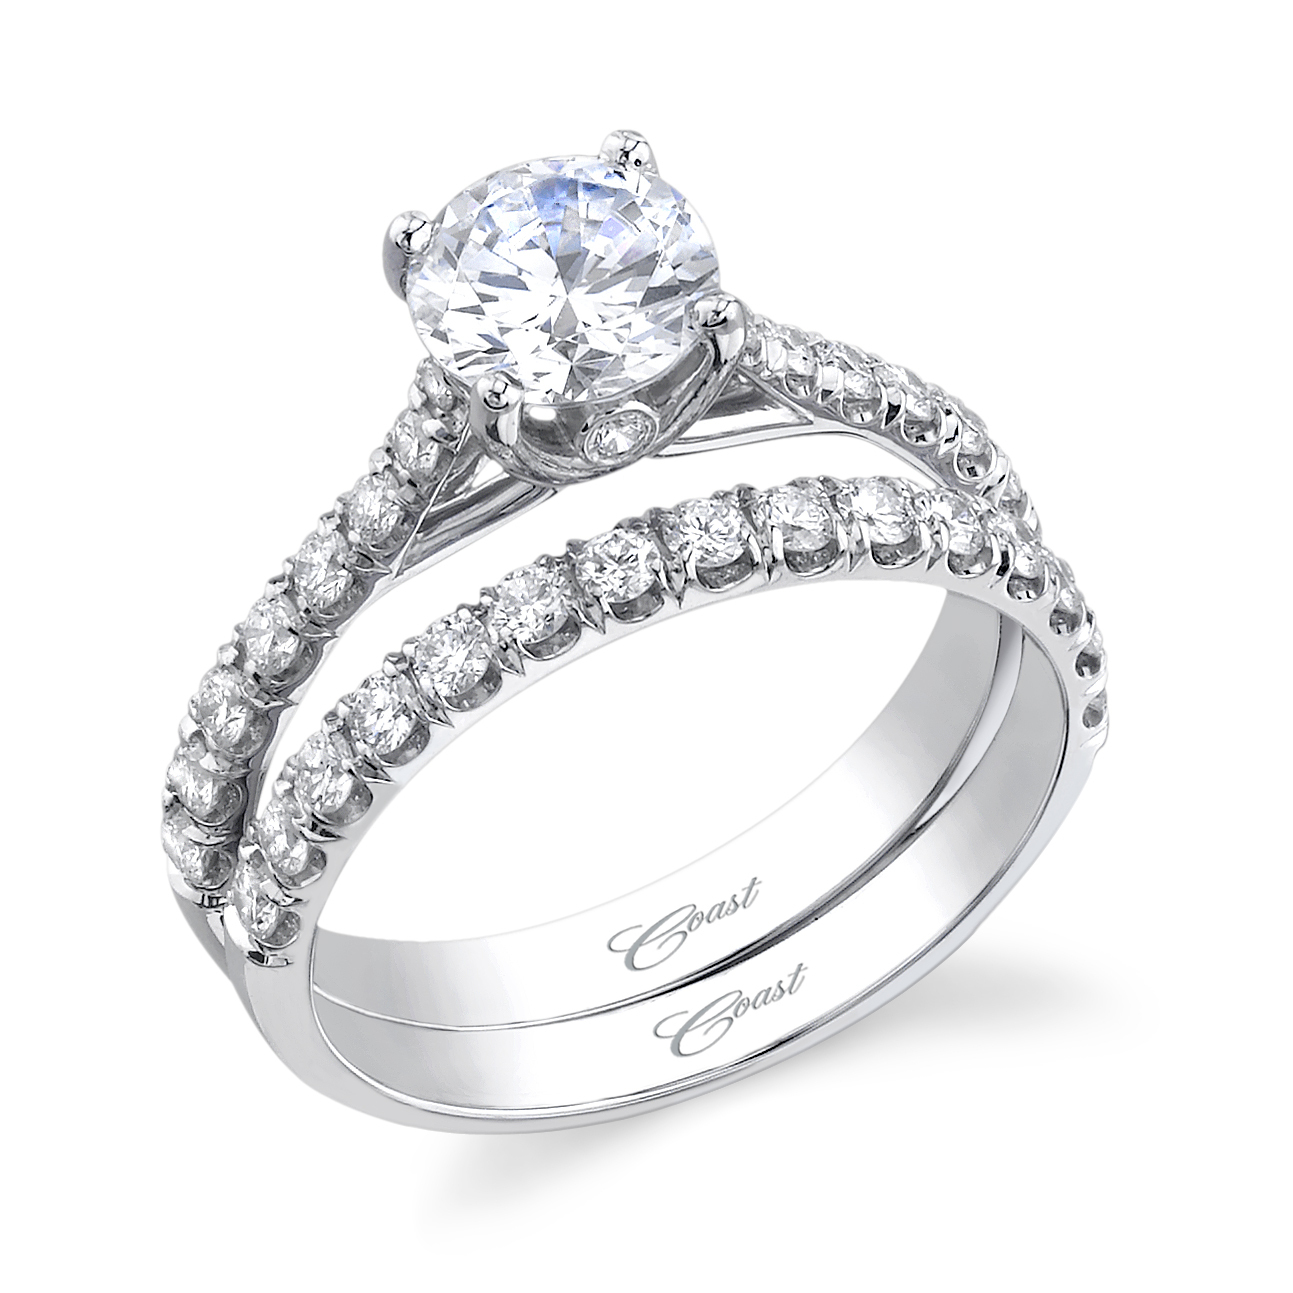 Charisma Engagement Ring - Classic